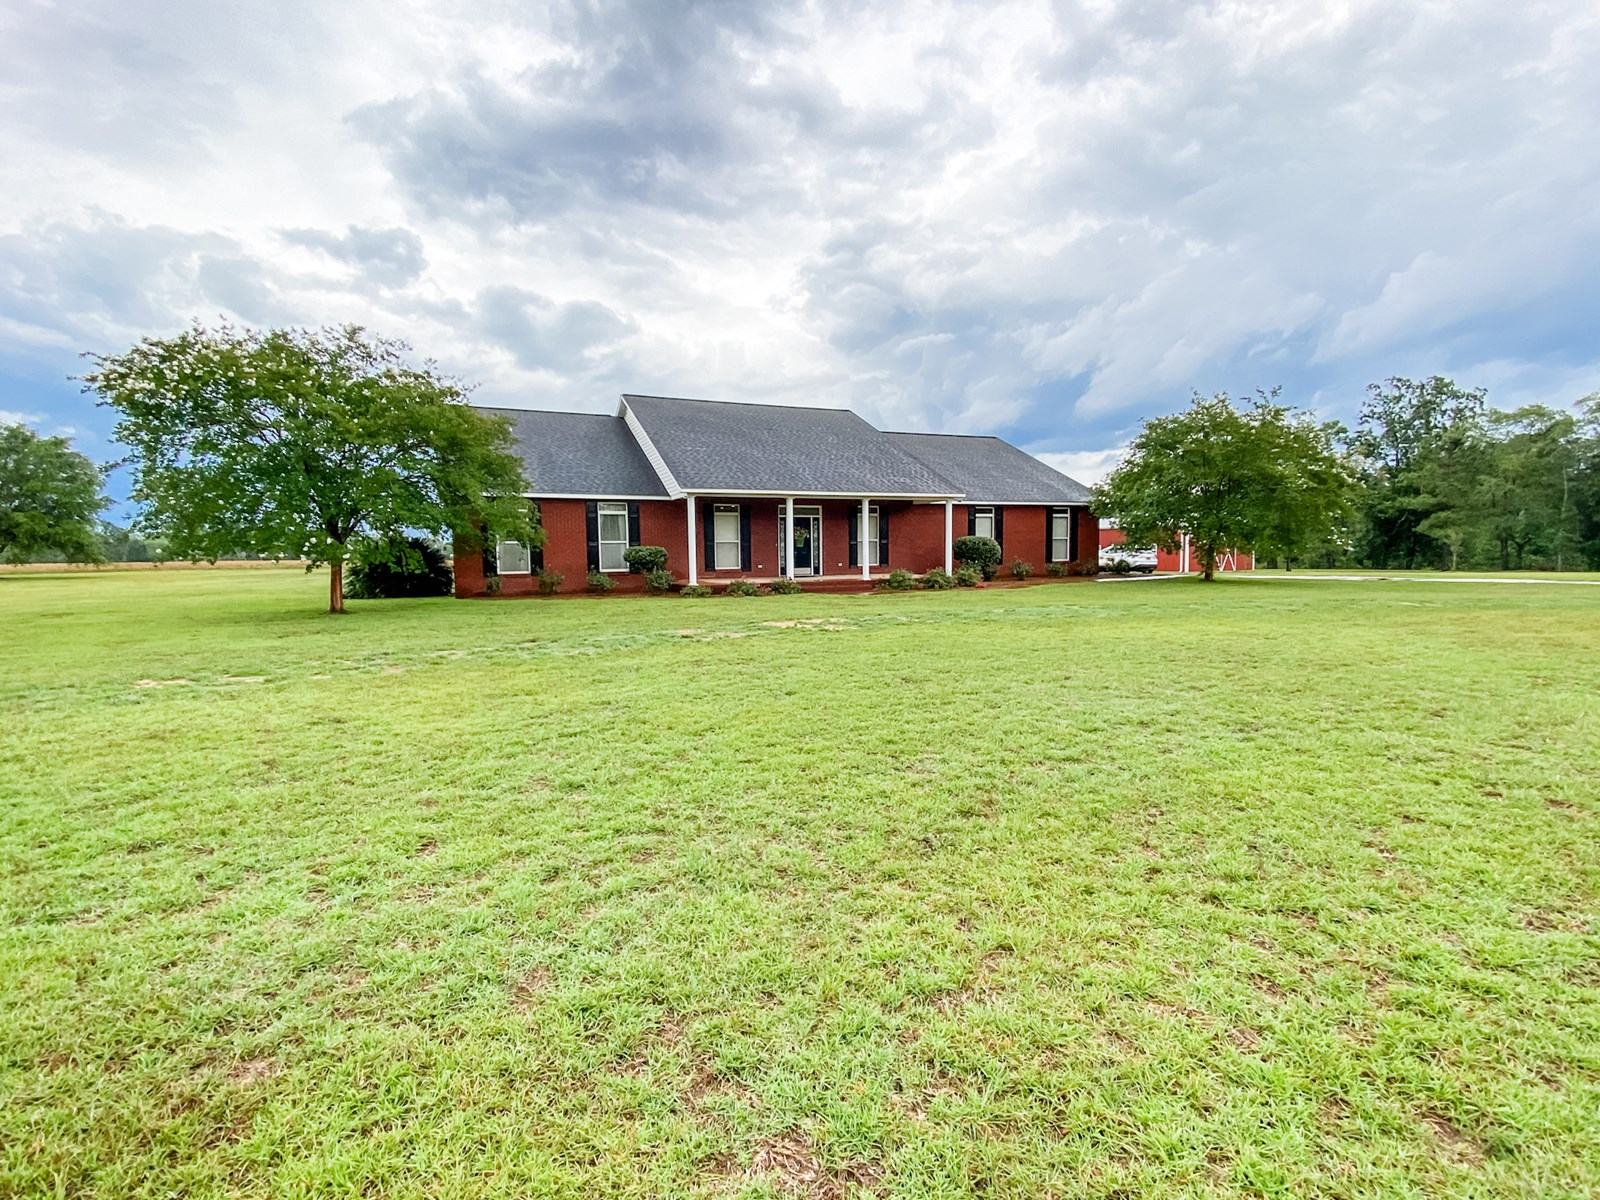 Home for Sale w/ Land & Barn in Country Geneva, Alabama